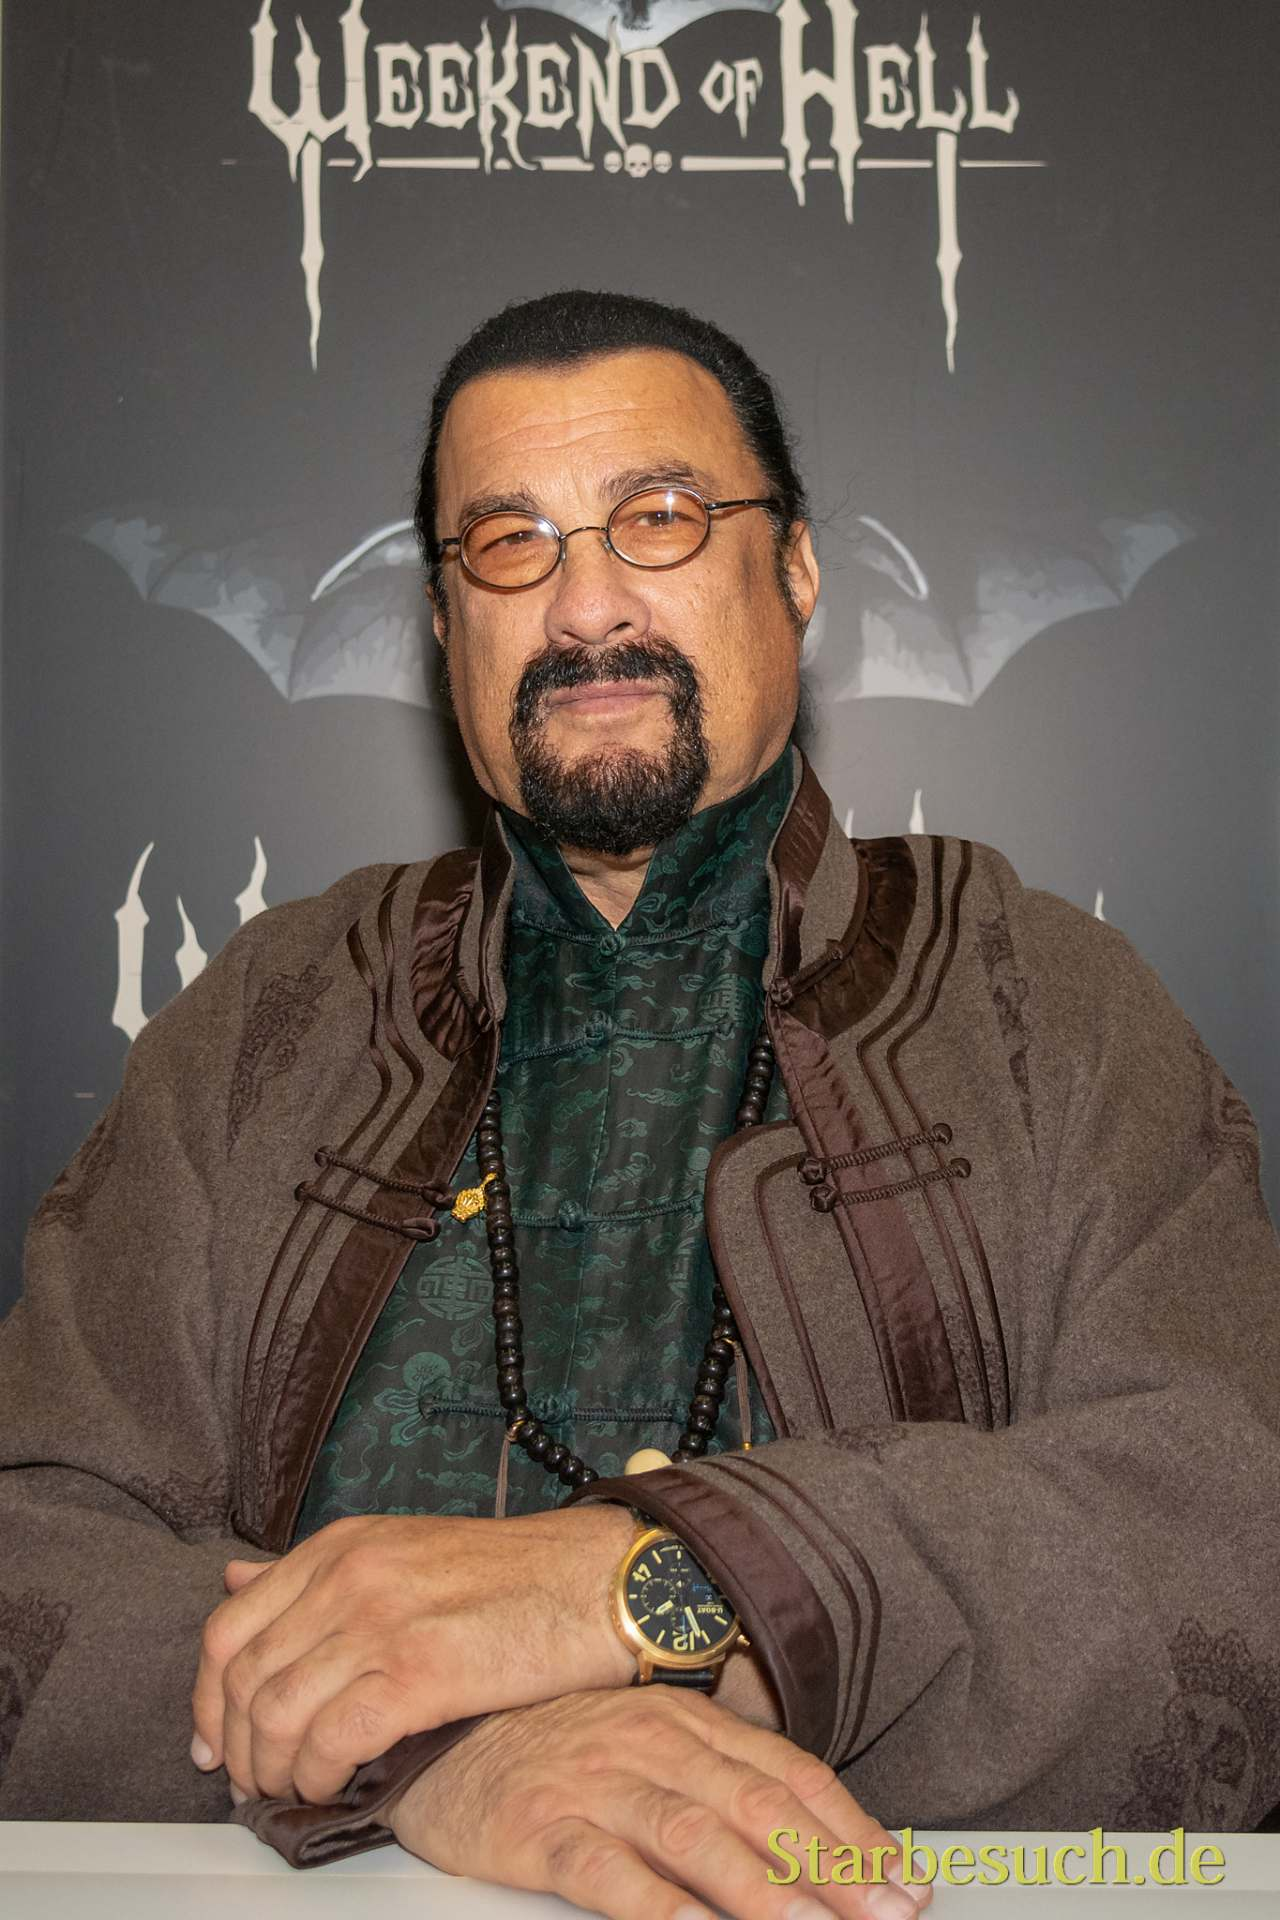 DORTMUND, GERMANY - November 3rd 2018: Steven Seagal at Weekend of Hell 2018